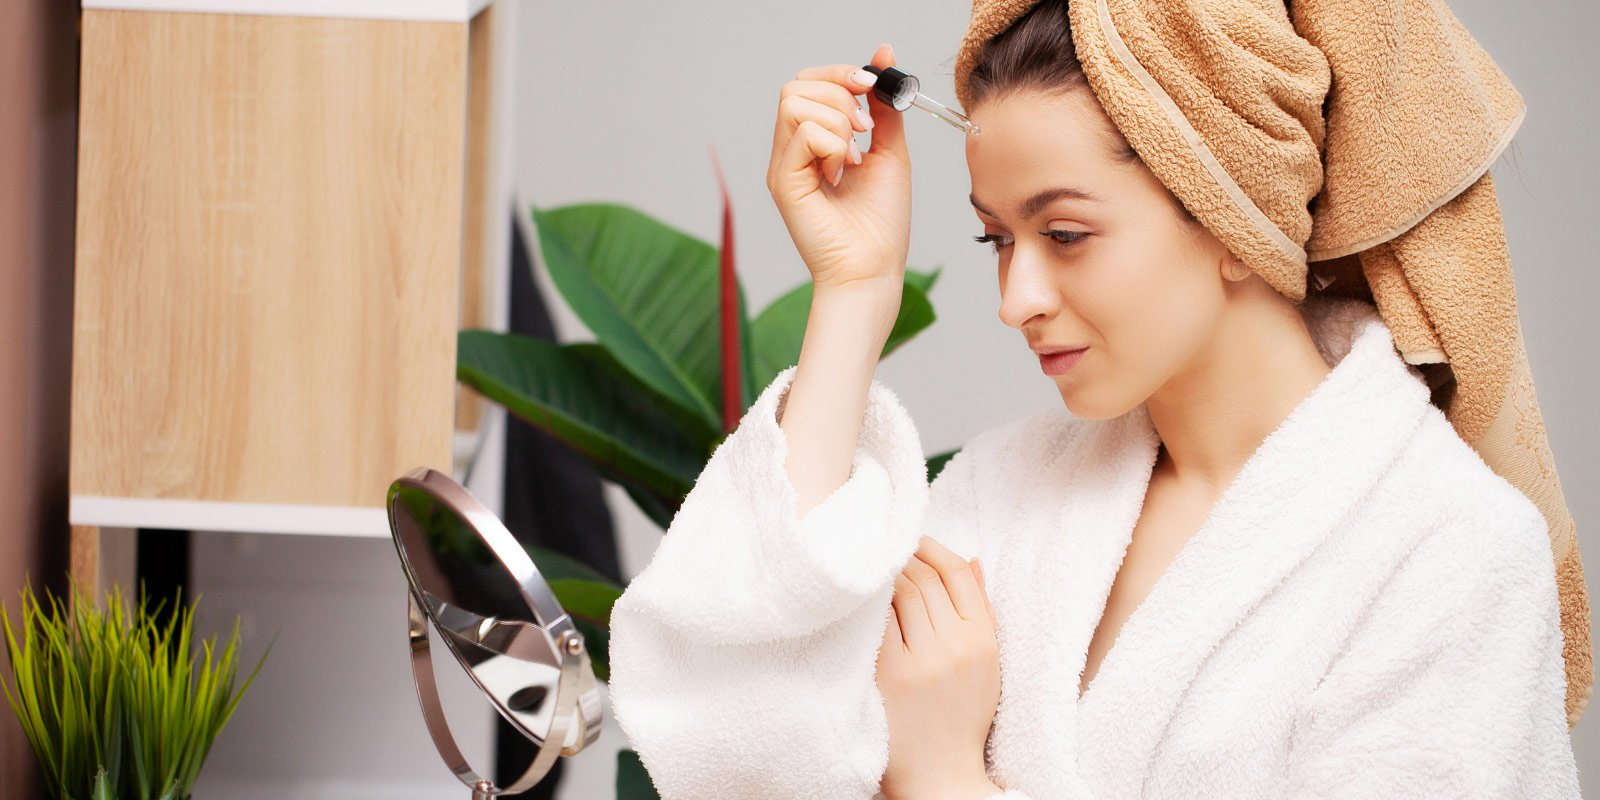 You Could Be Wasting Your Face Serum: 8 Mistakes to Avoid